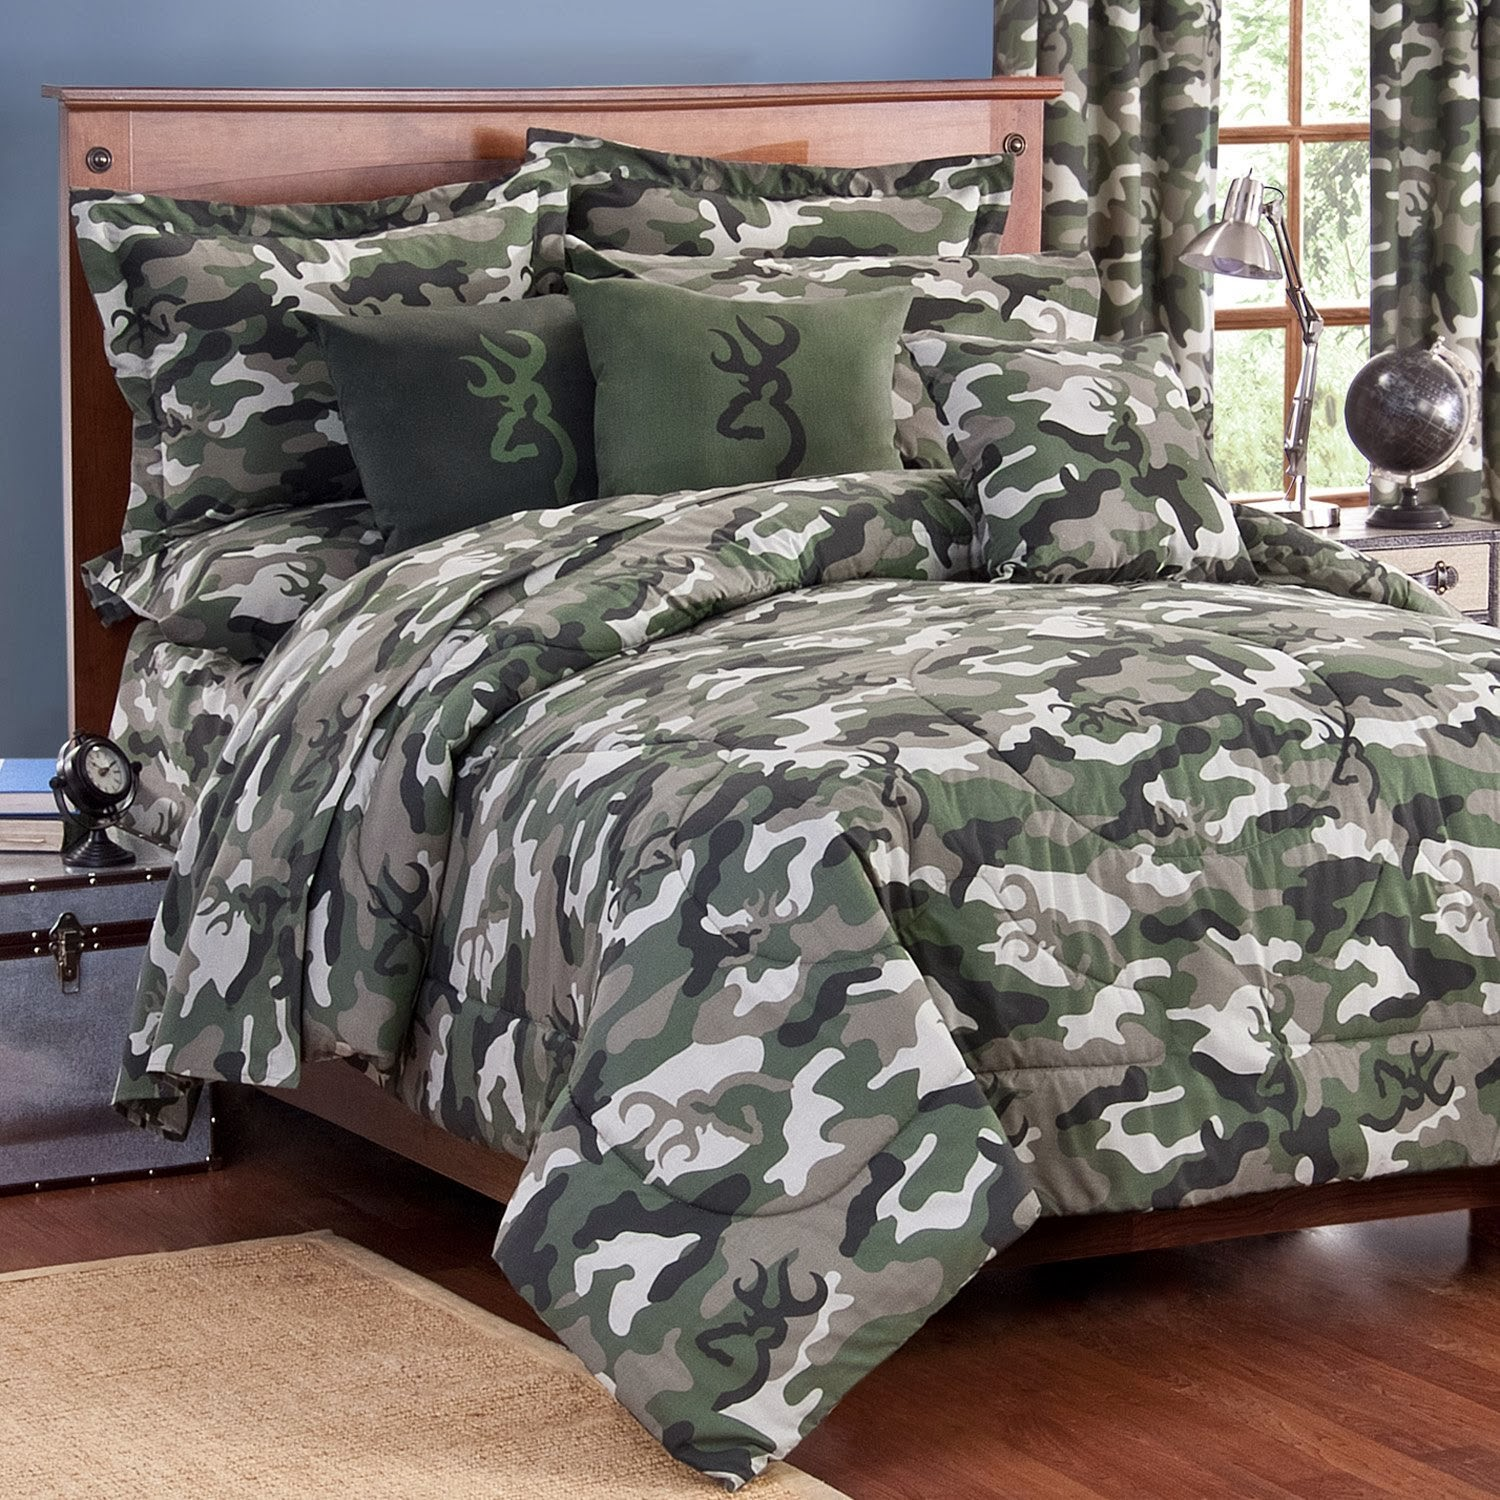 Camo Bed Set Camo Bed Set Image Of Camouflage Crib